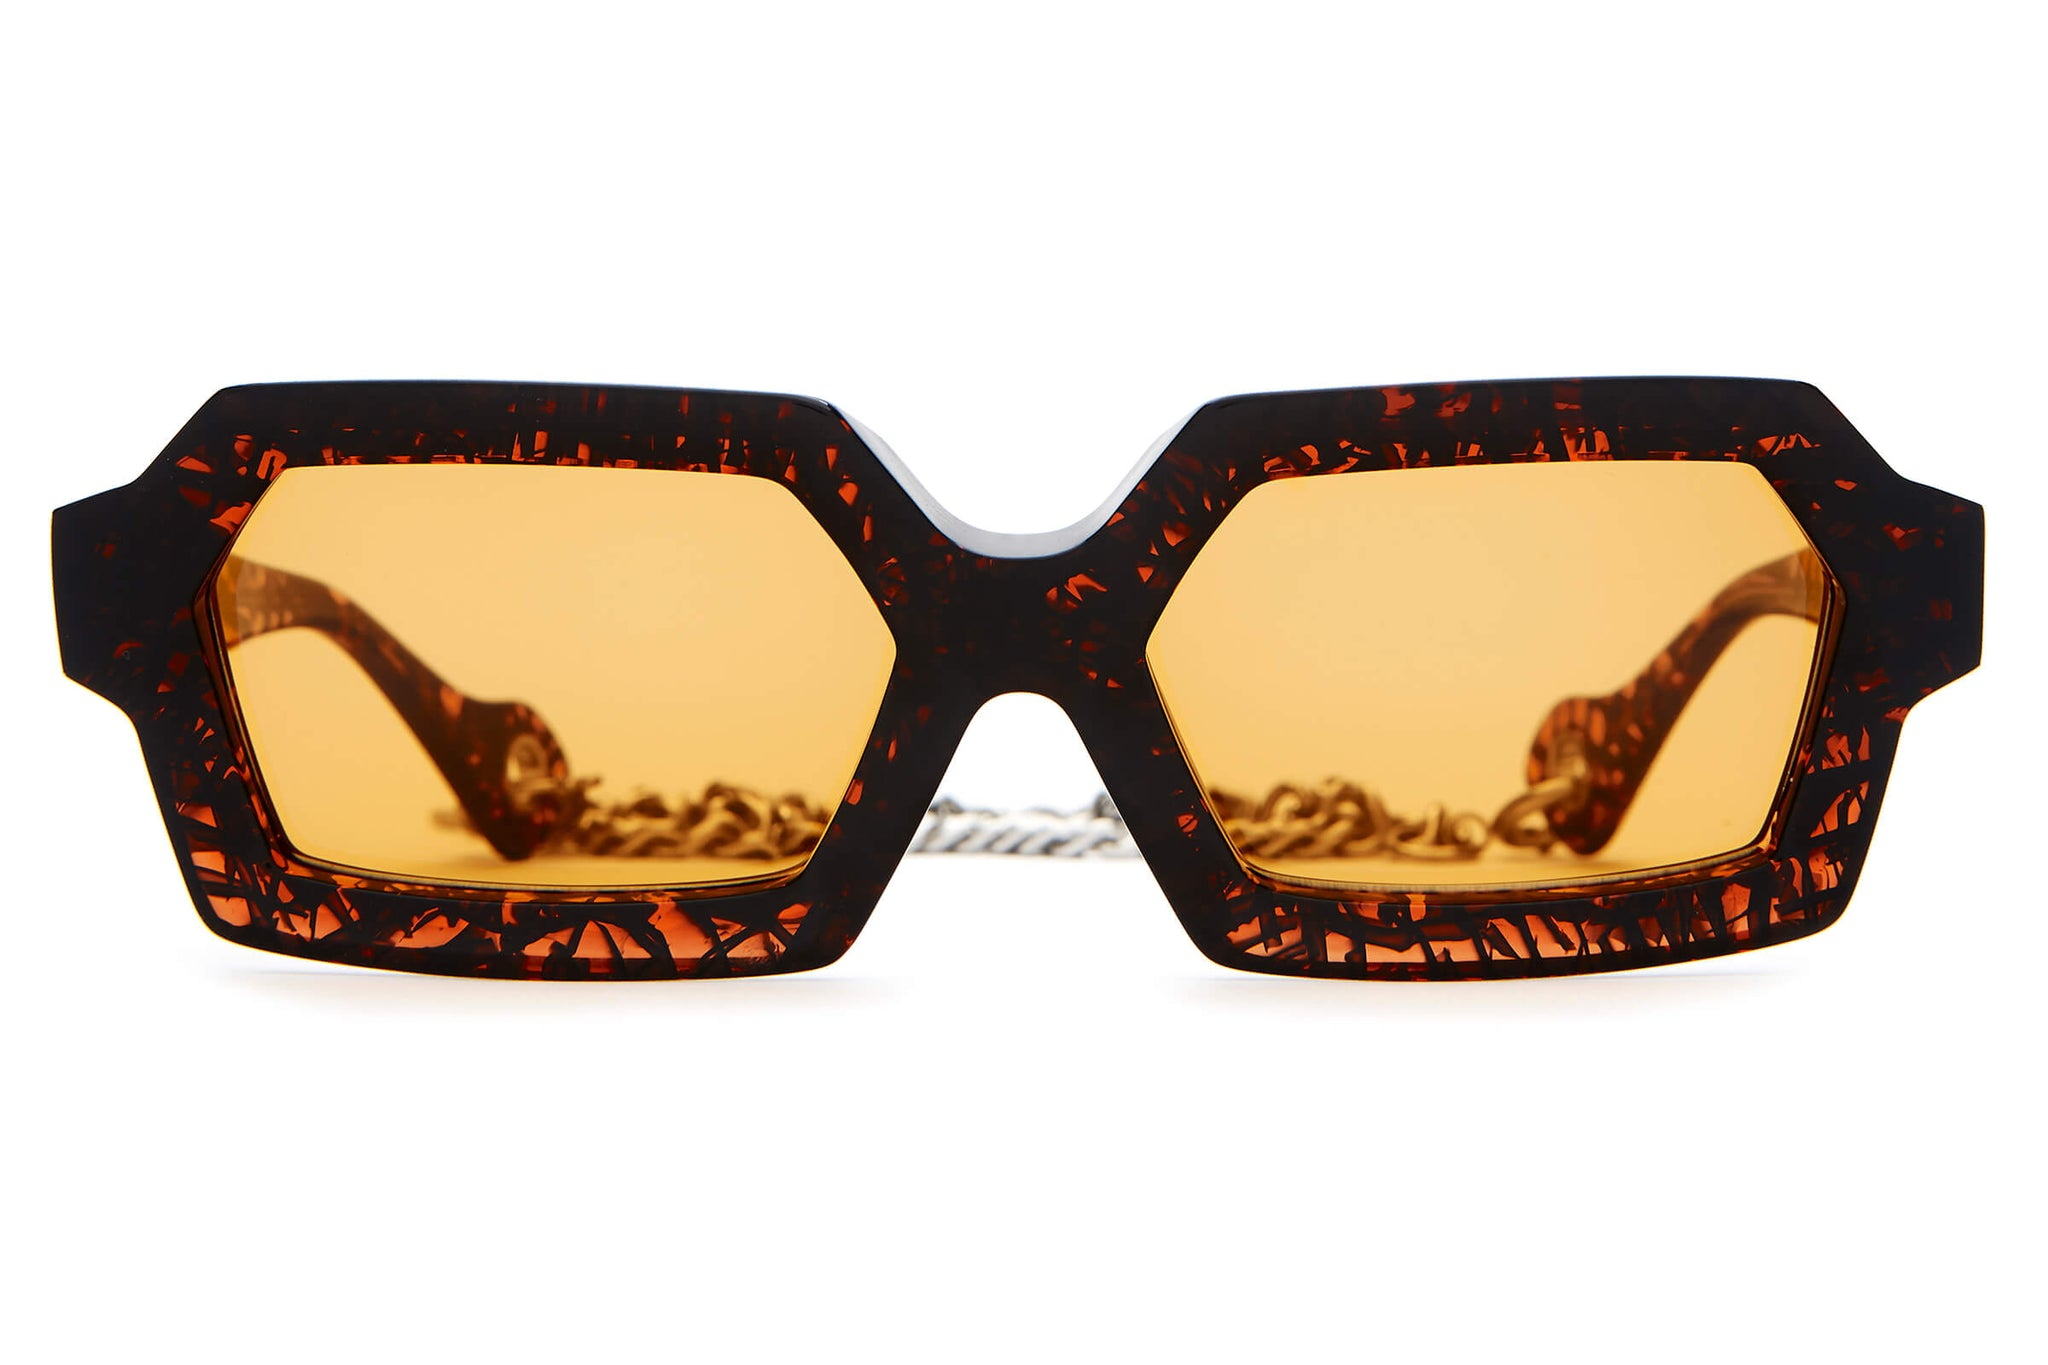 The Sex-Ray Spex by The Growlers - Heavy Syrup - / Burnt Orange - Sunglasses